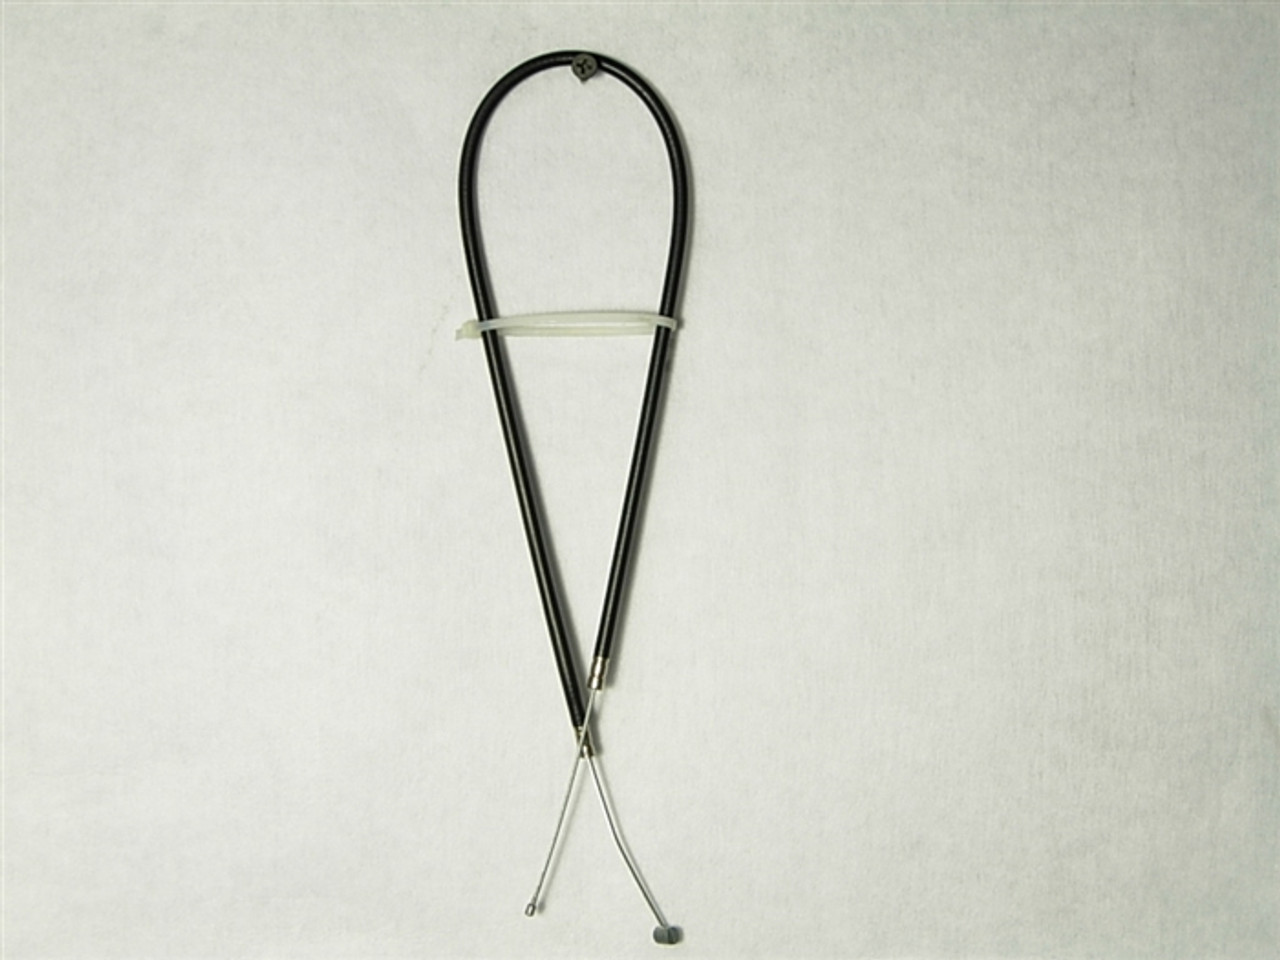 THOTTLE CABLE 11989-A111-9